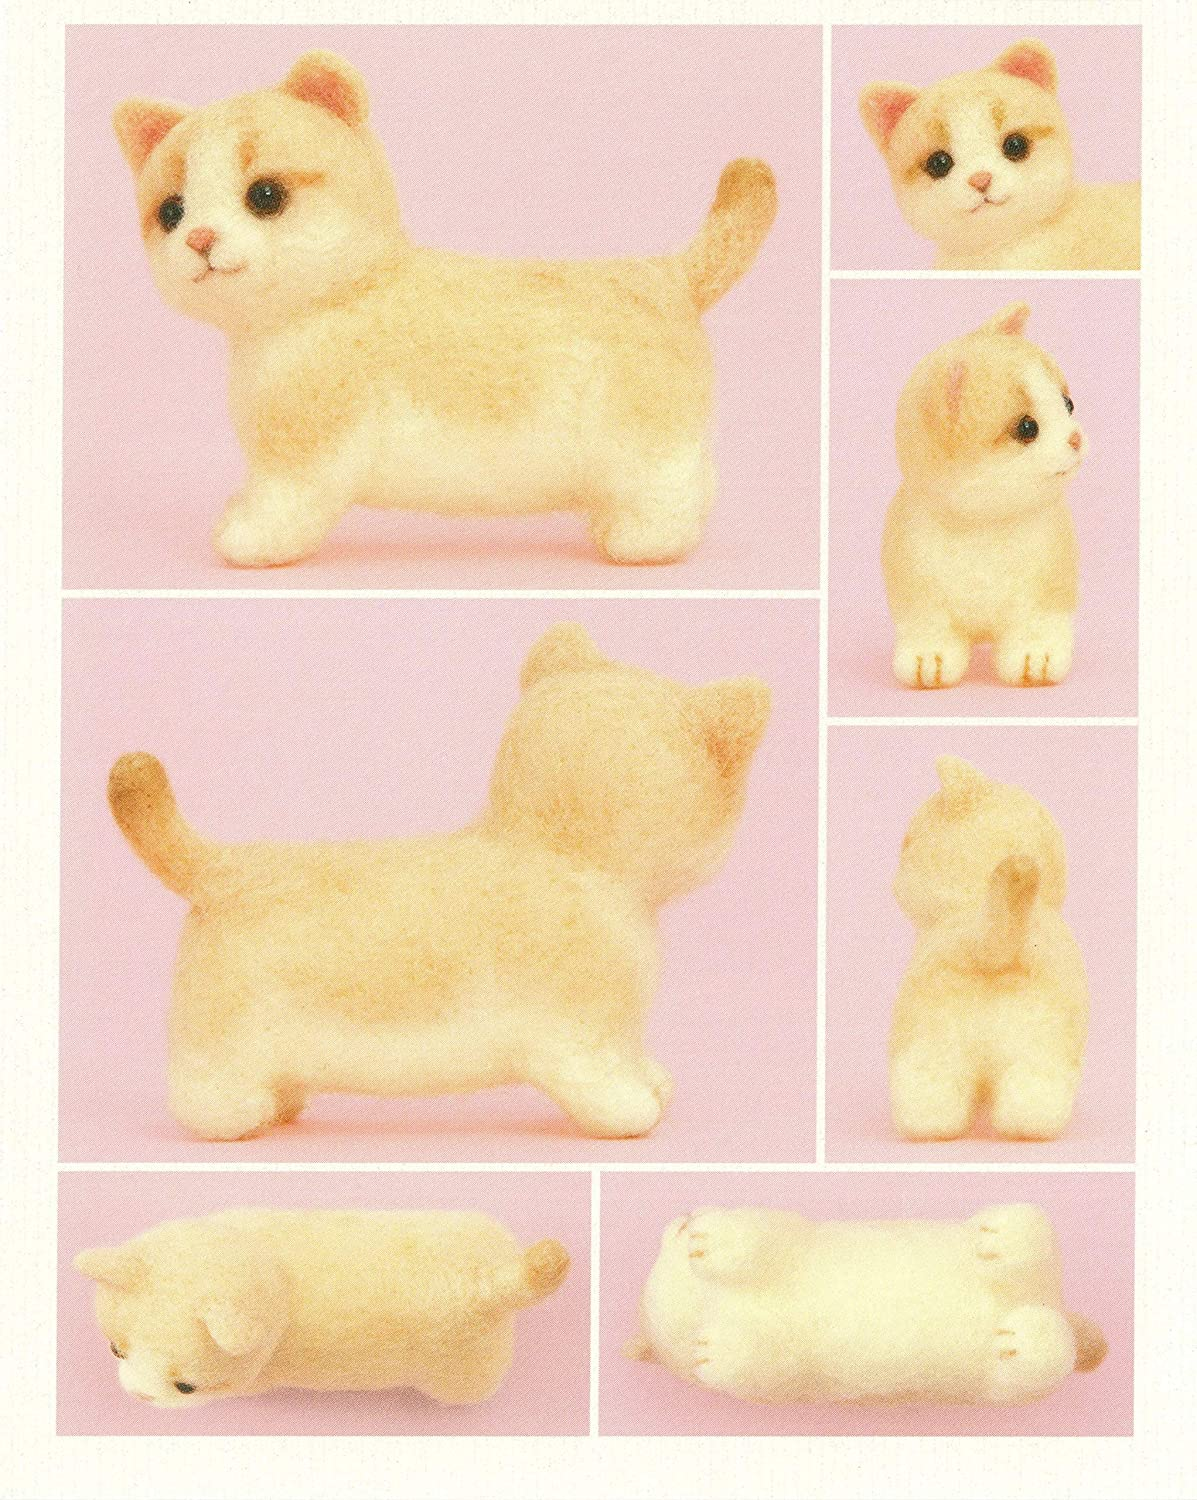 Cool Beans Boutique Needle Felting DIY Kit Imported from Japan with English Instructions WFKit-HM-28Munchkin-2 Beige Munchkin Cat